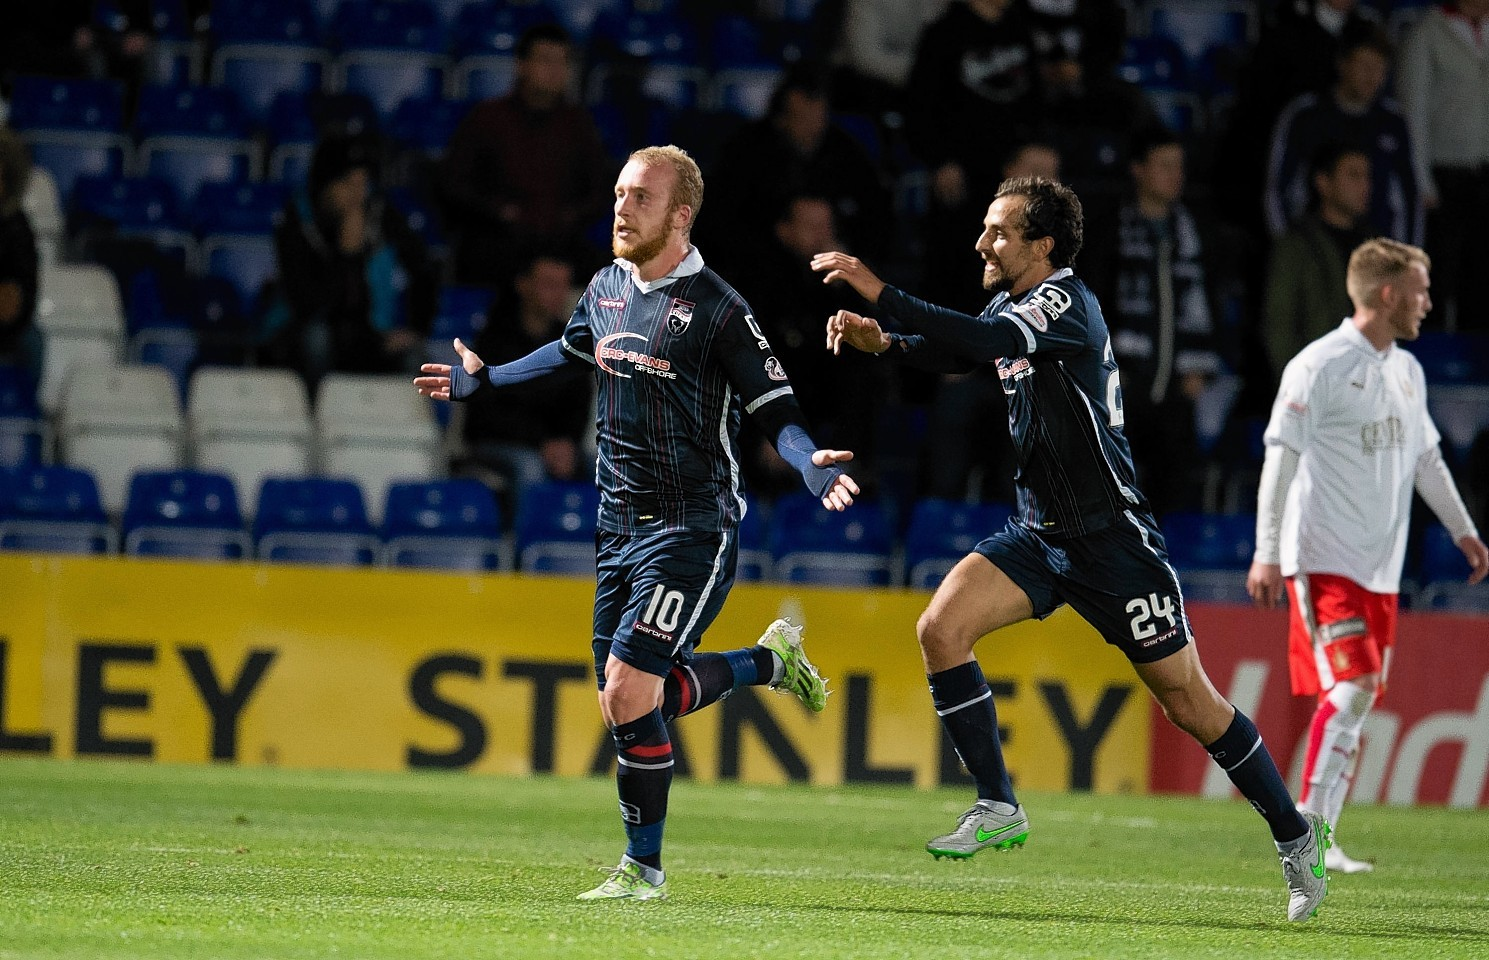 Liam Boyce scored a hat-trick against Caley Thistle at the weekend.